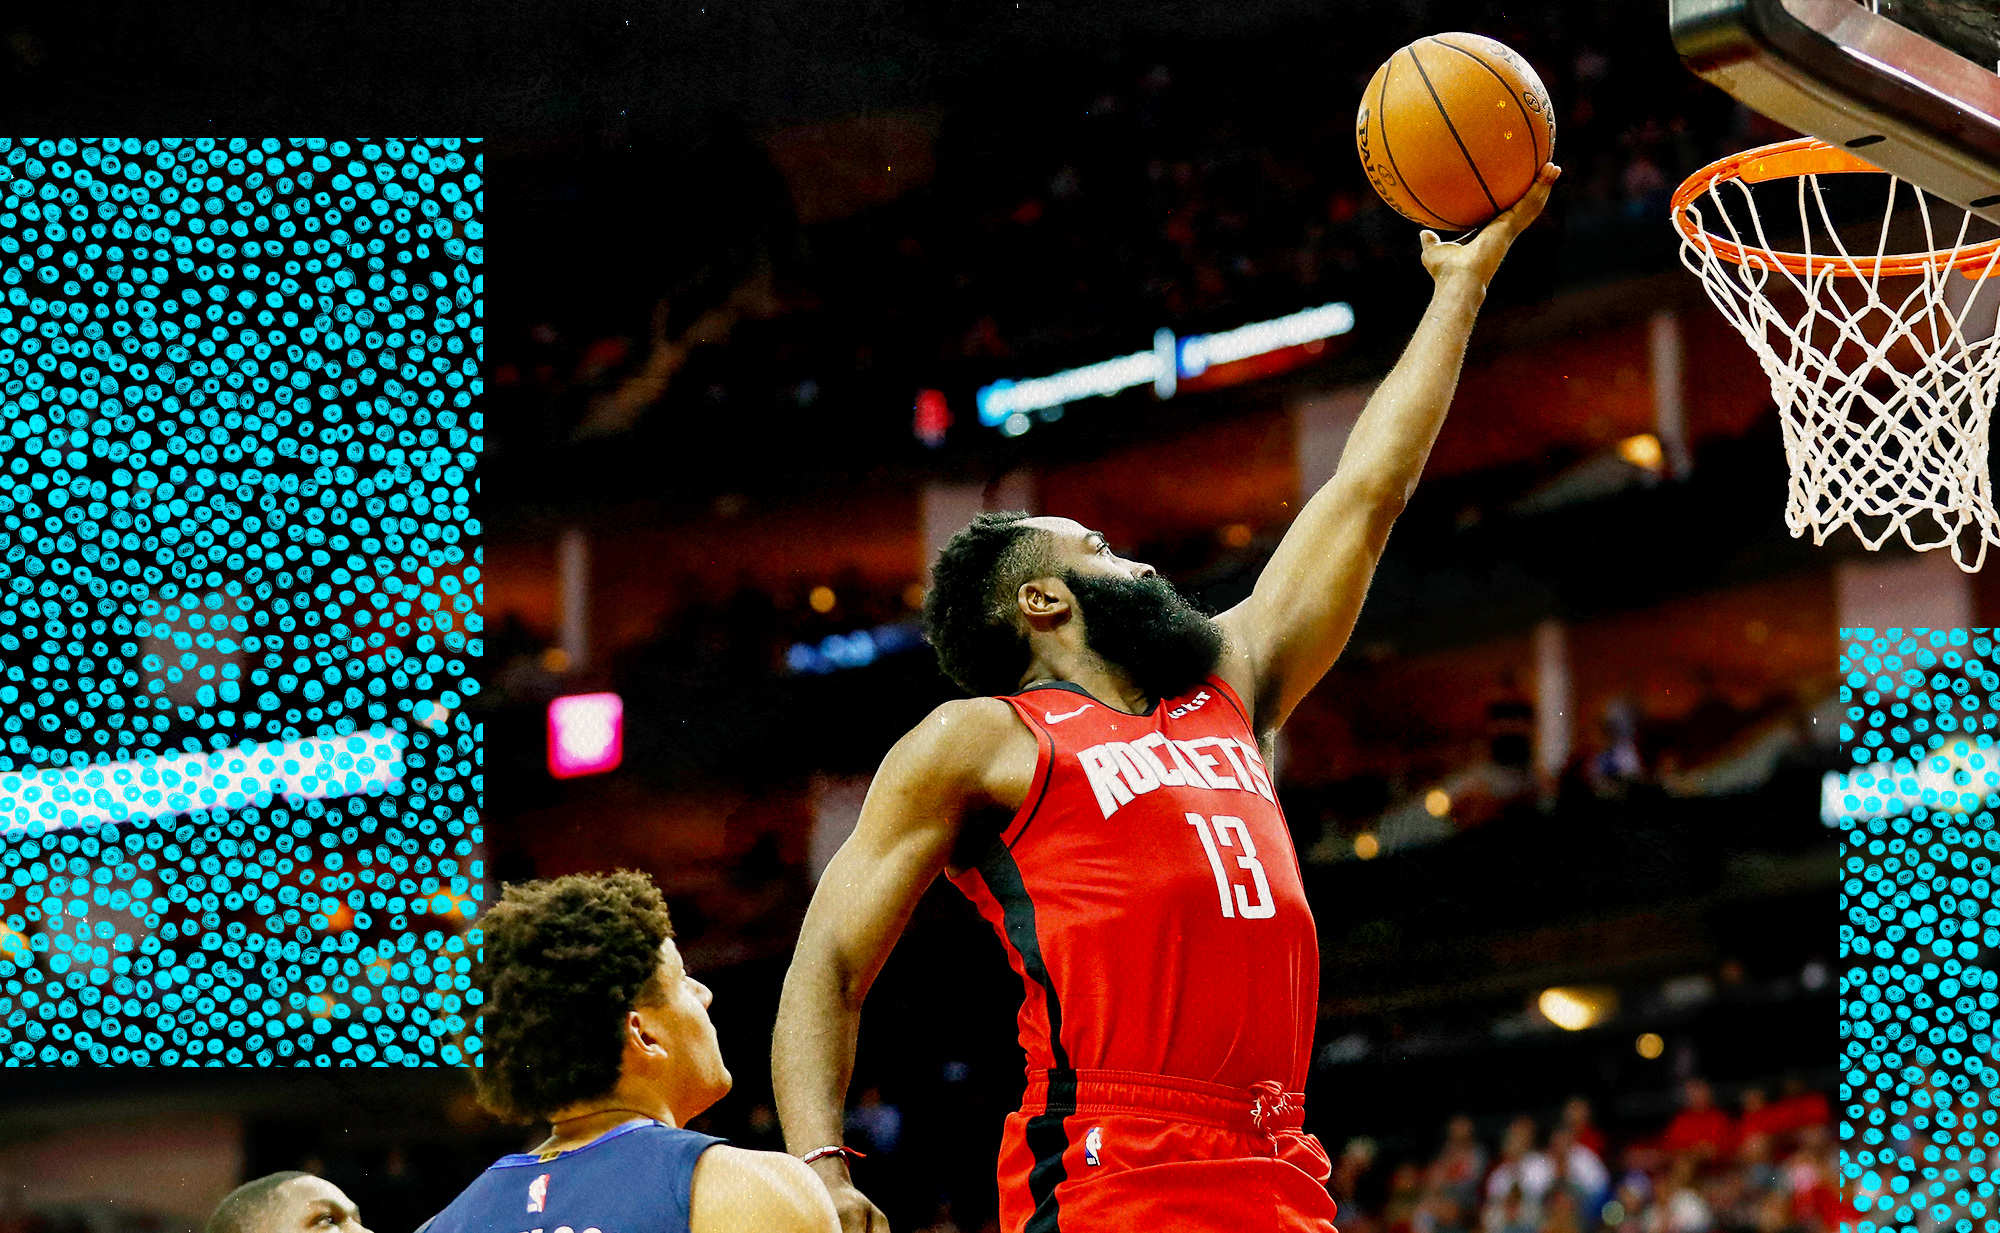 James Harden takes a layup for the Rockets.